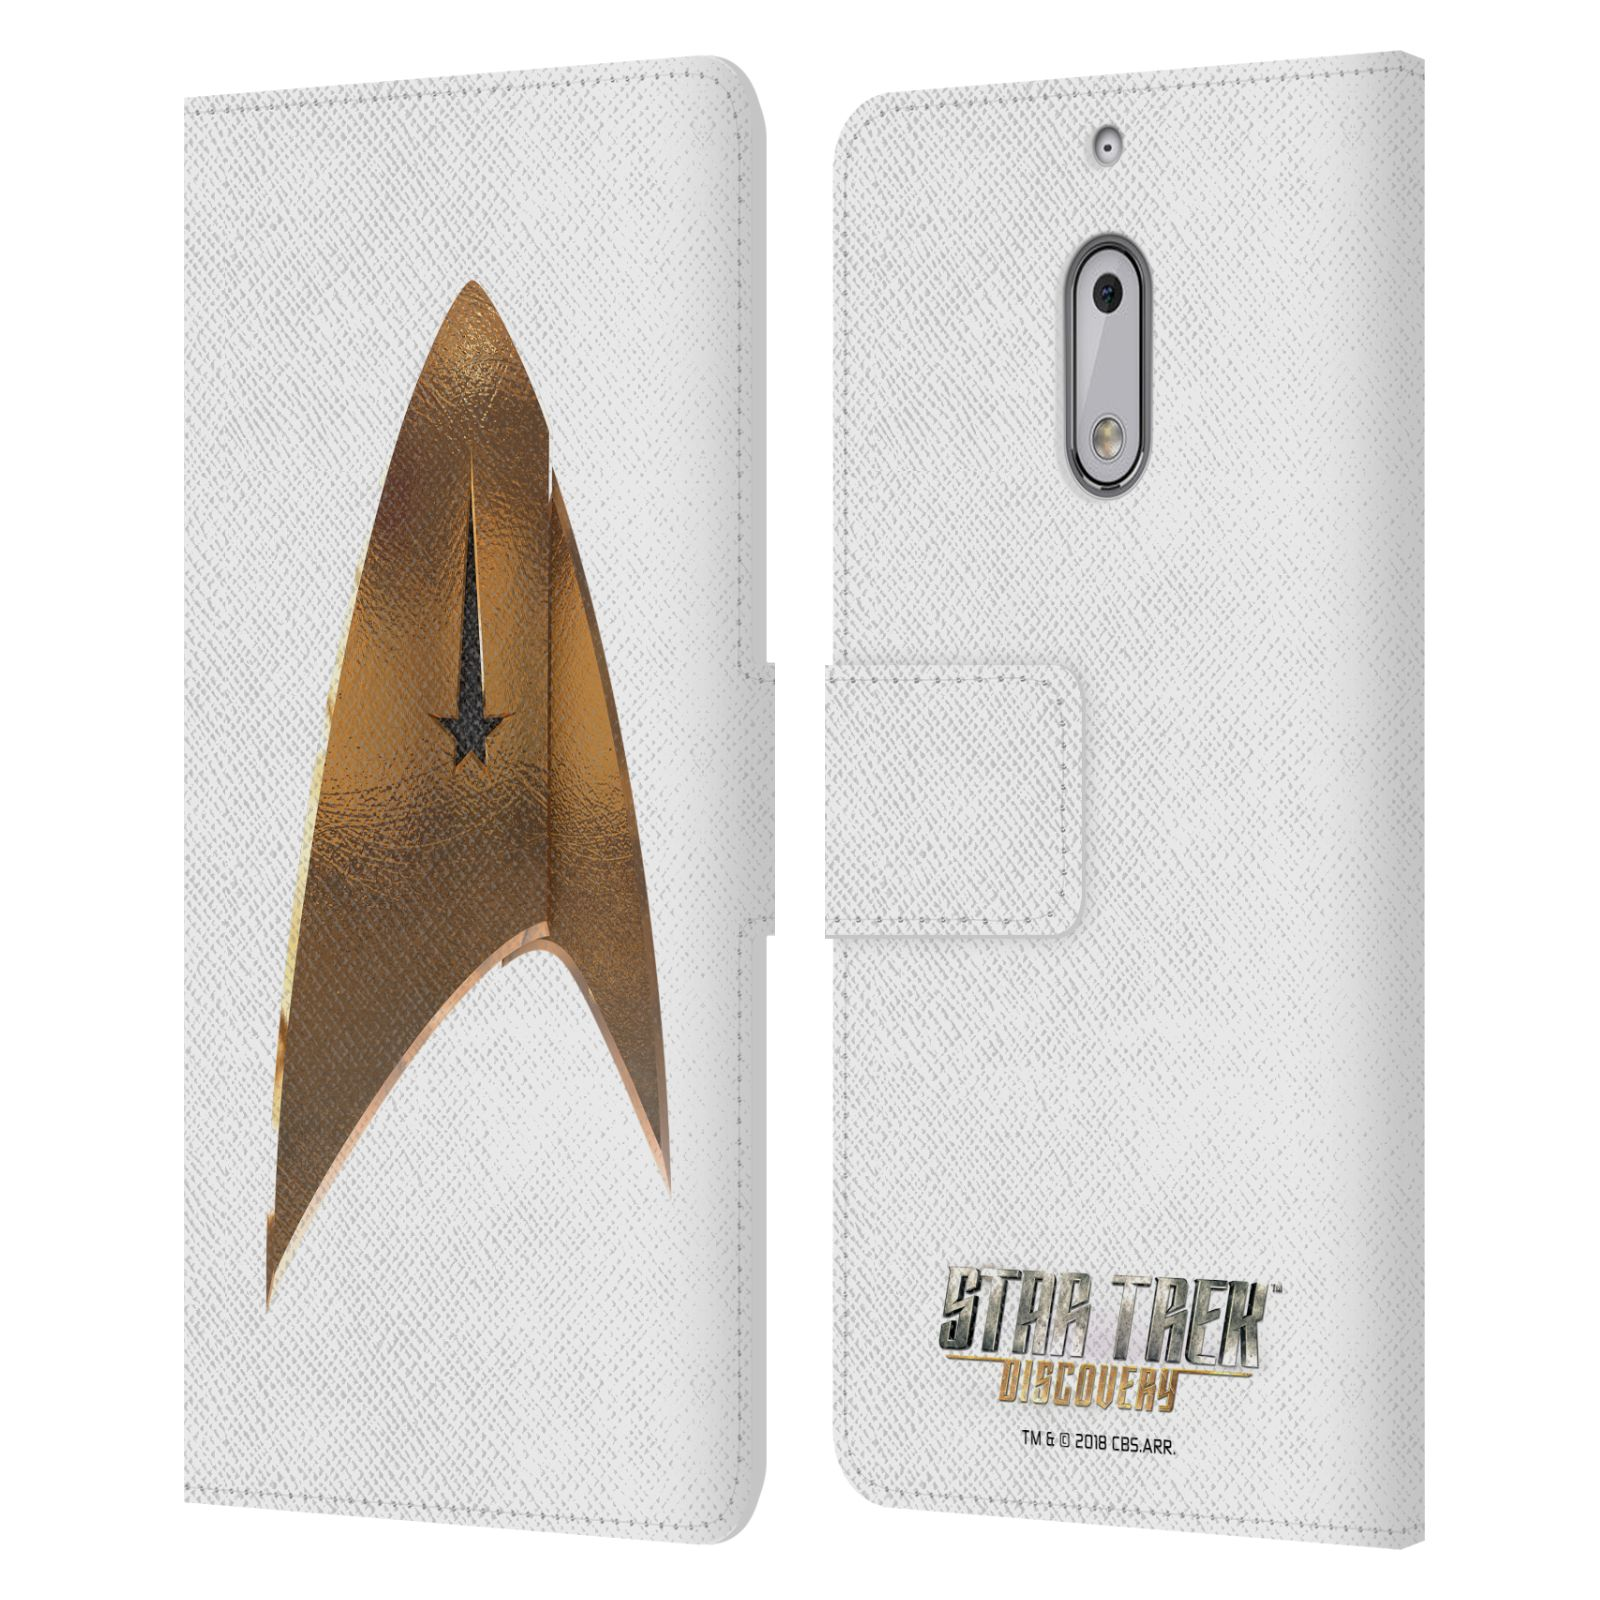 OFFICIAL-STAR-TREK-DISCOVERY-LOGO-LEATHER-BOOK-CASE-FOR-MICROSOFT-NOKIA-PHONES